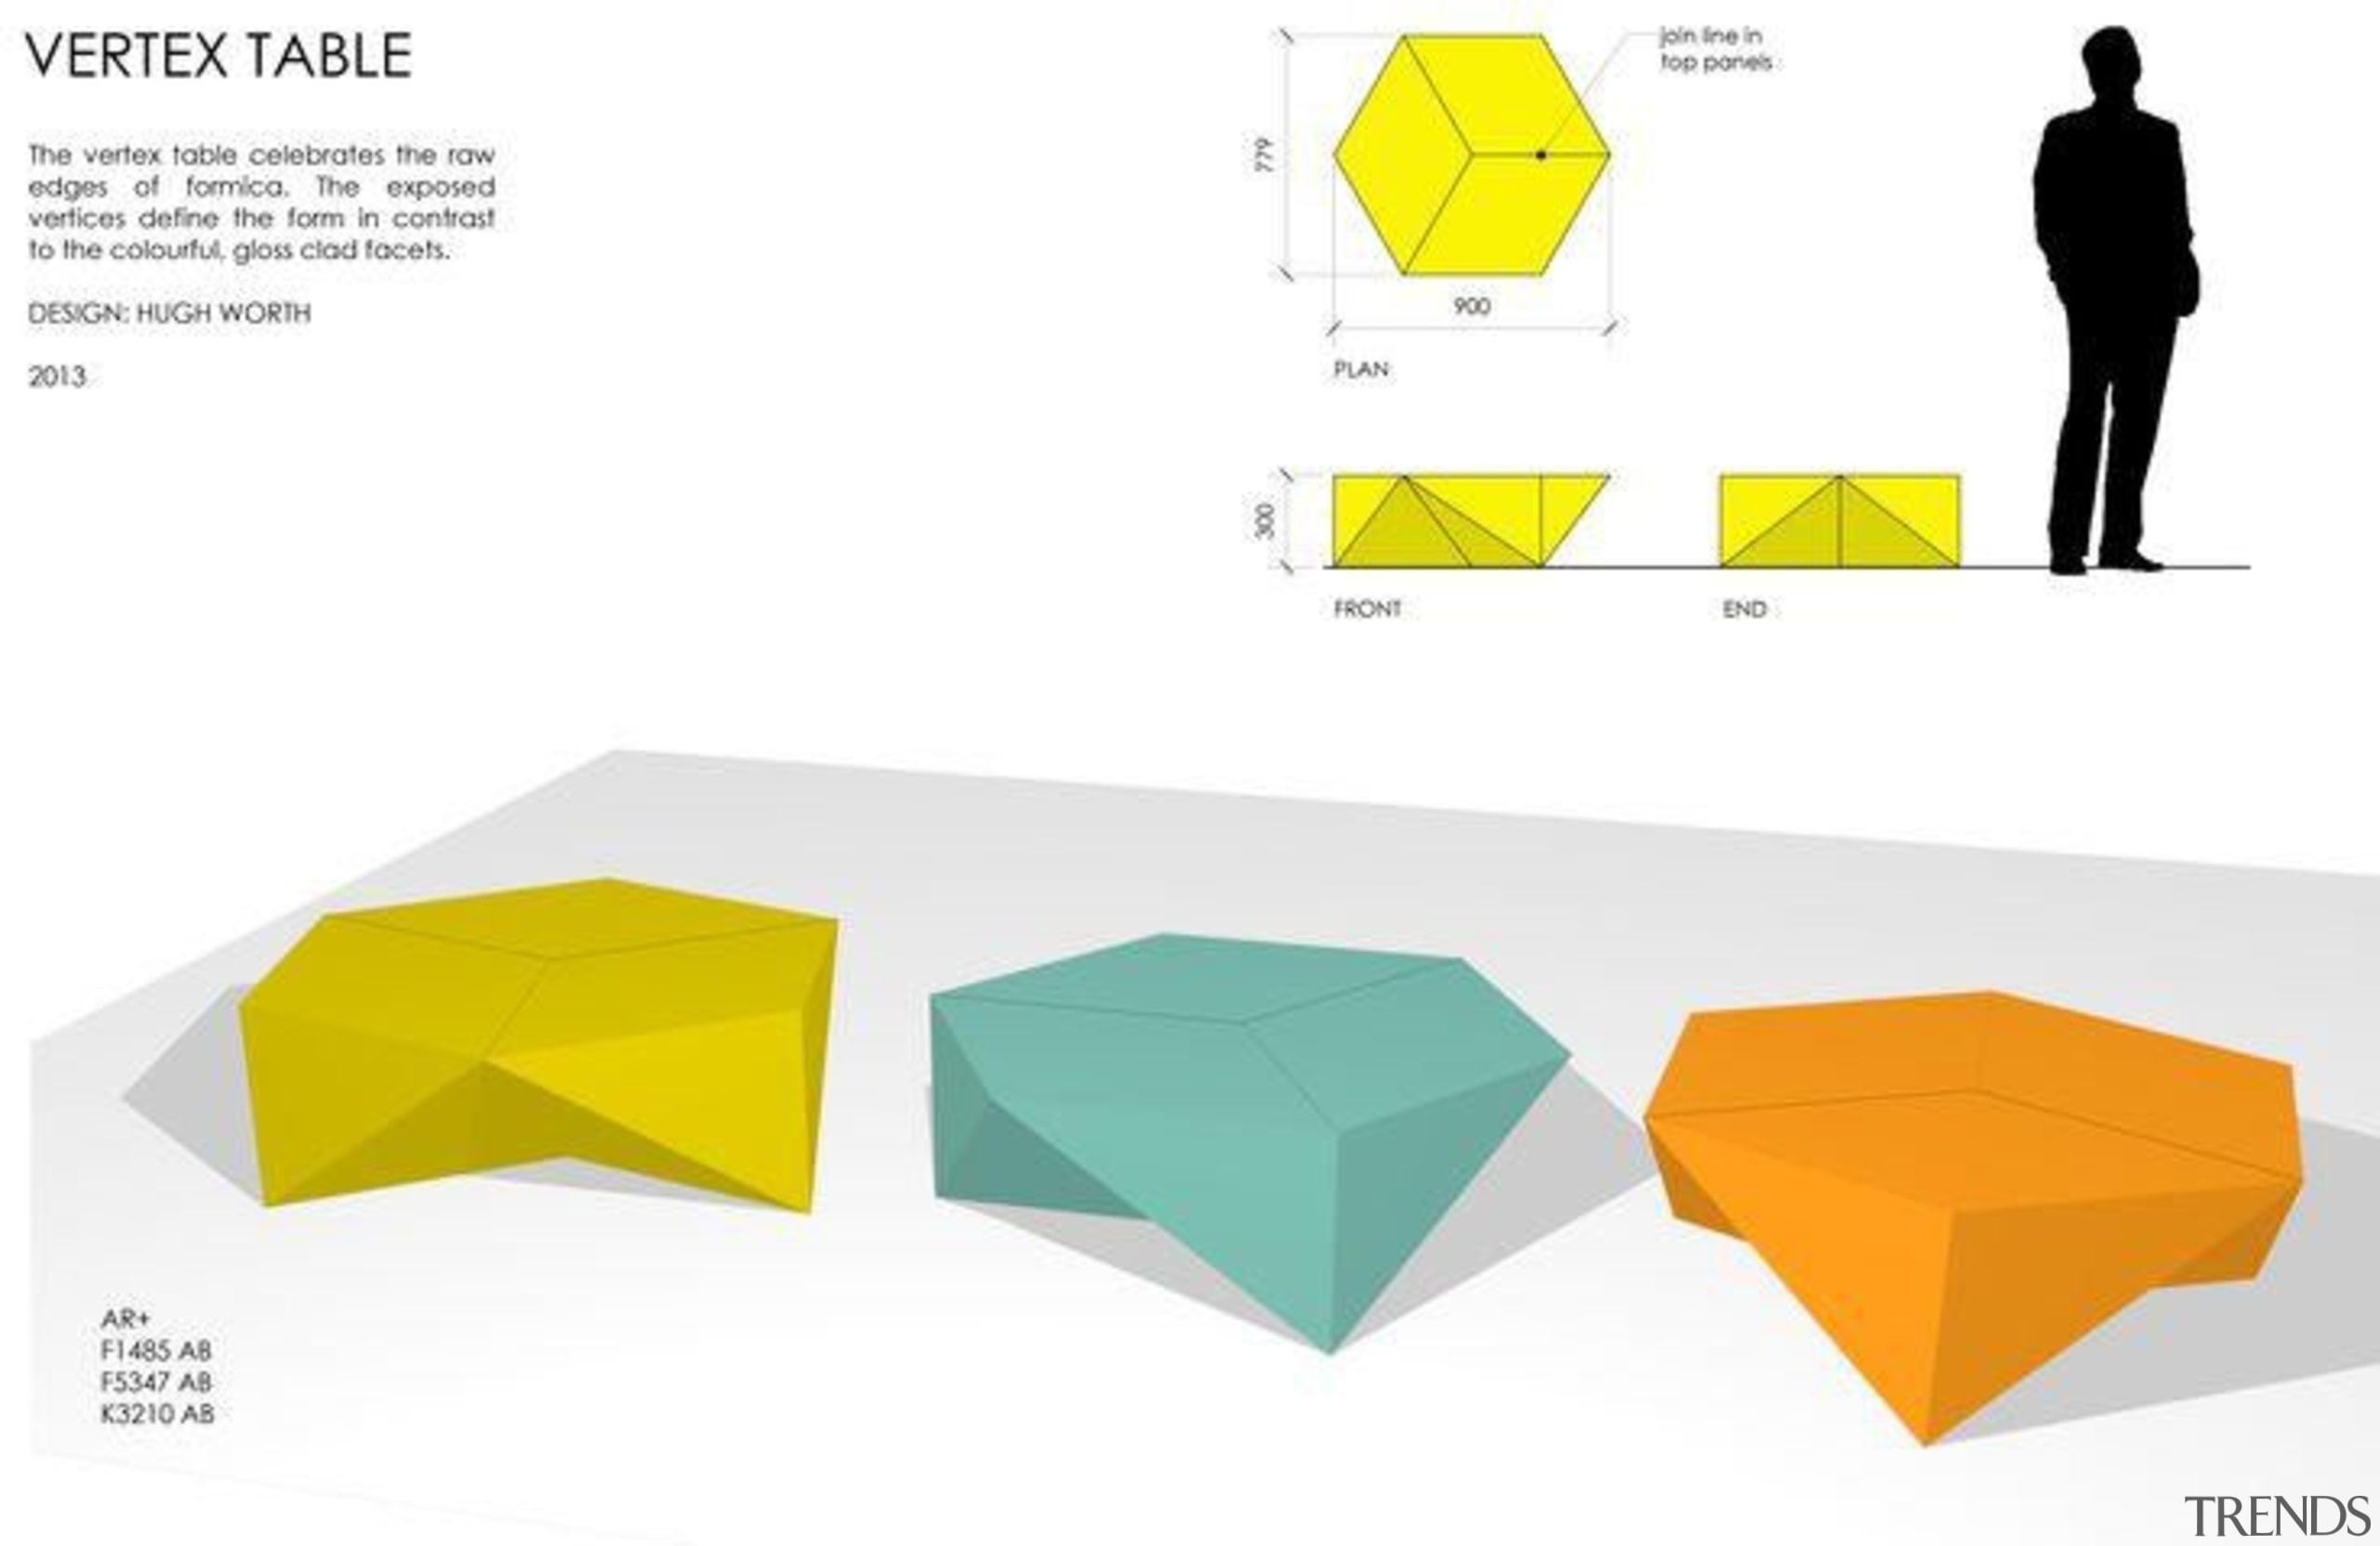 by Hugh Worth - Vertex Table - angle angle, design, diagram, furniture, line, product, product design, table, triangle, yellow, white